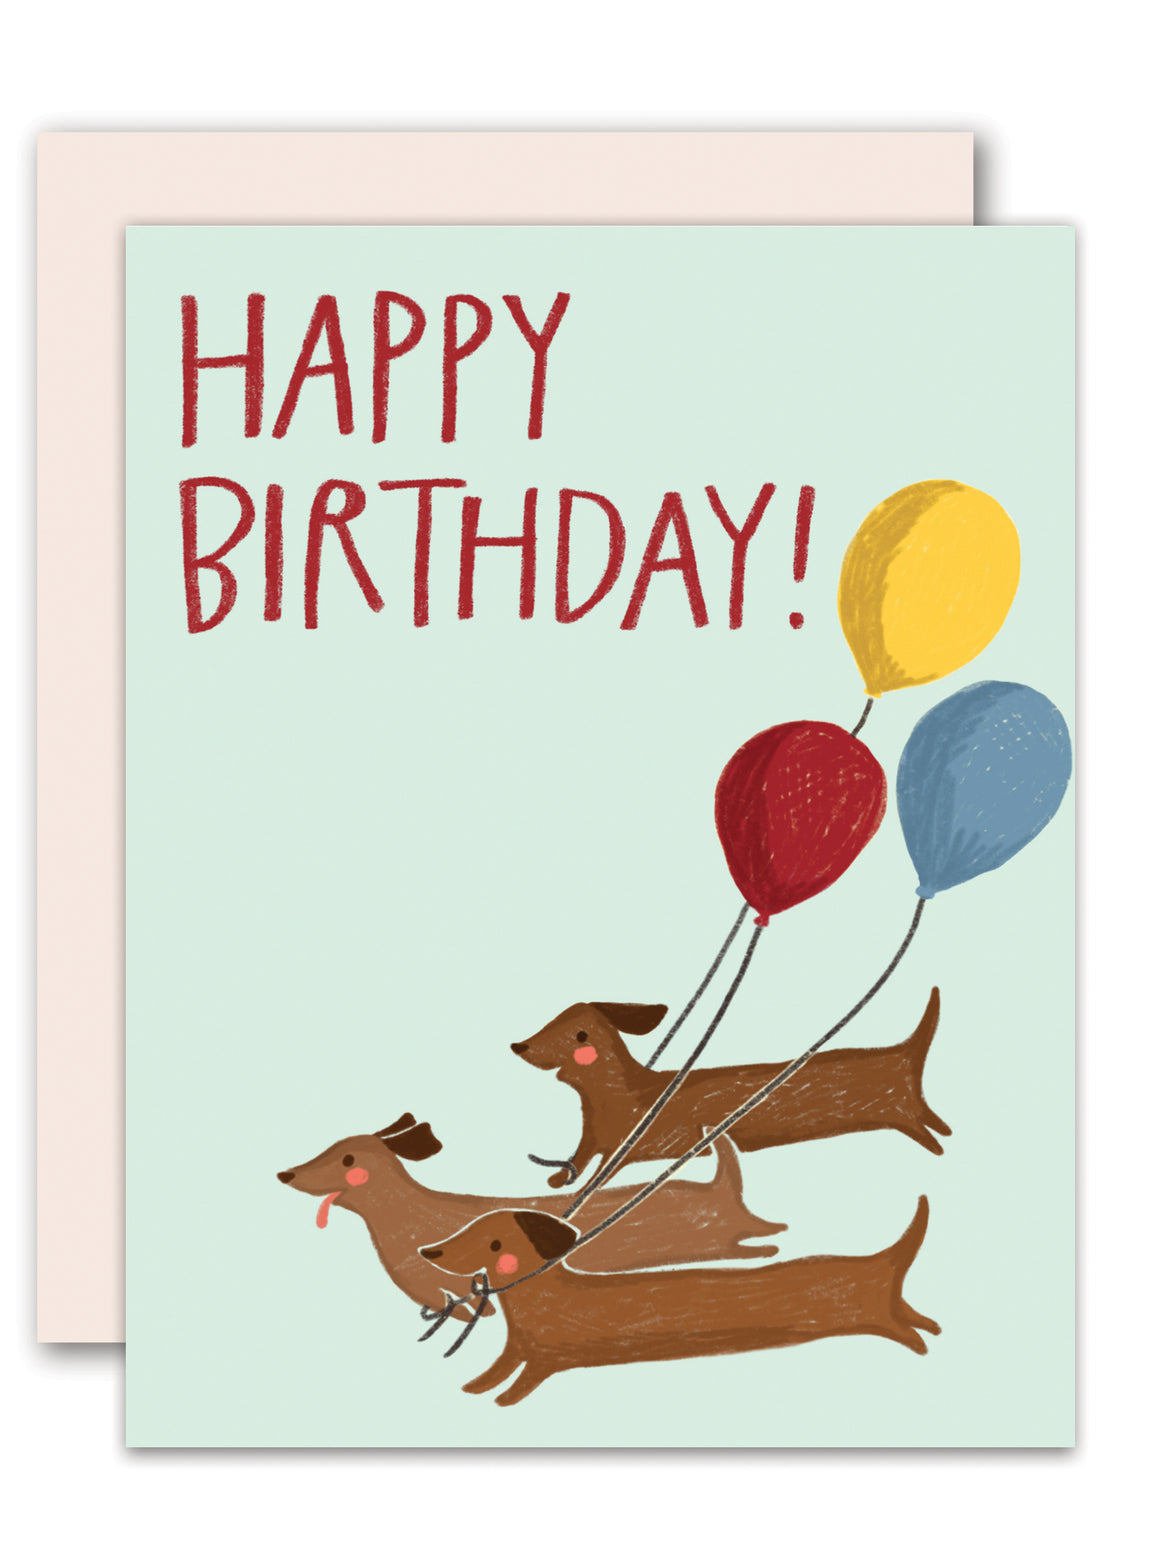 Dogs with balloons - birthday card